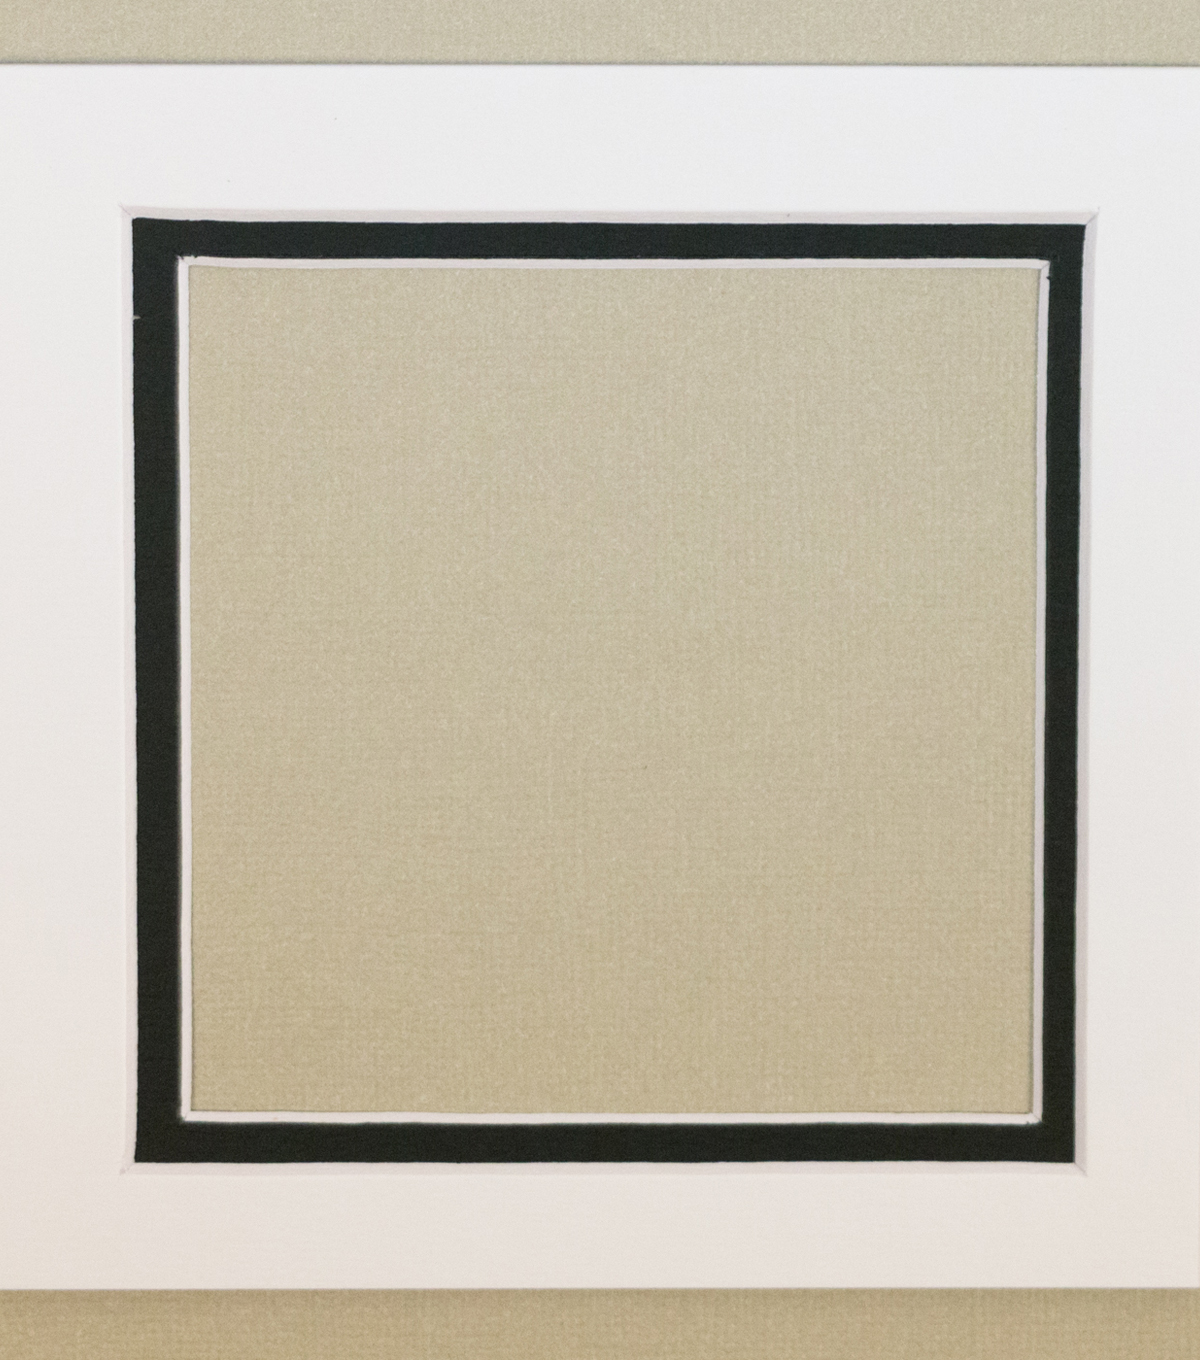 Framing Mat 5X5-White & Black